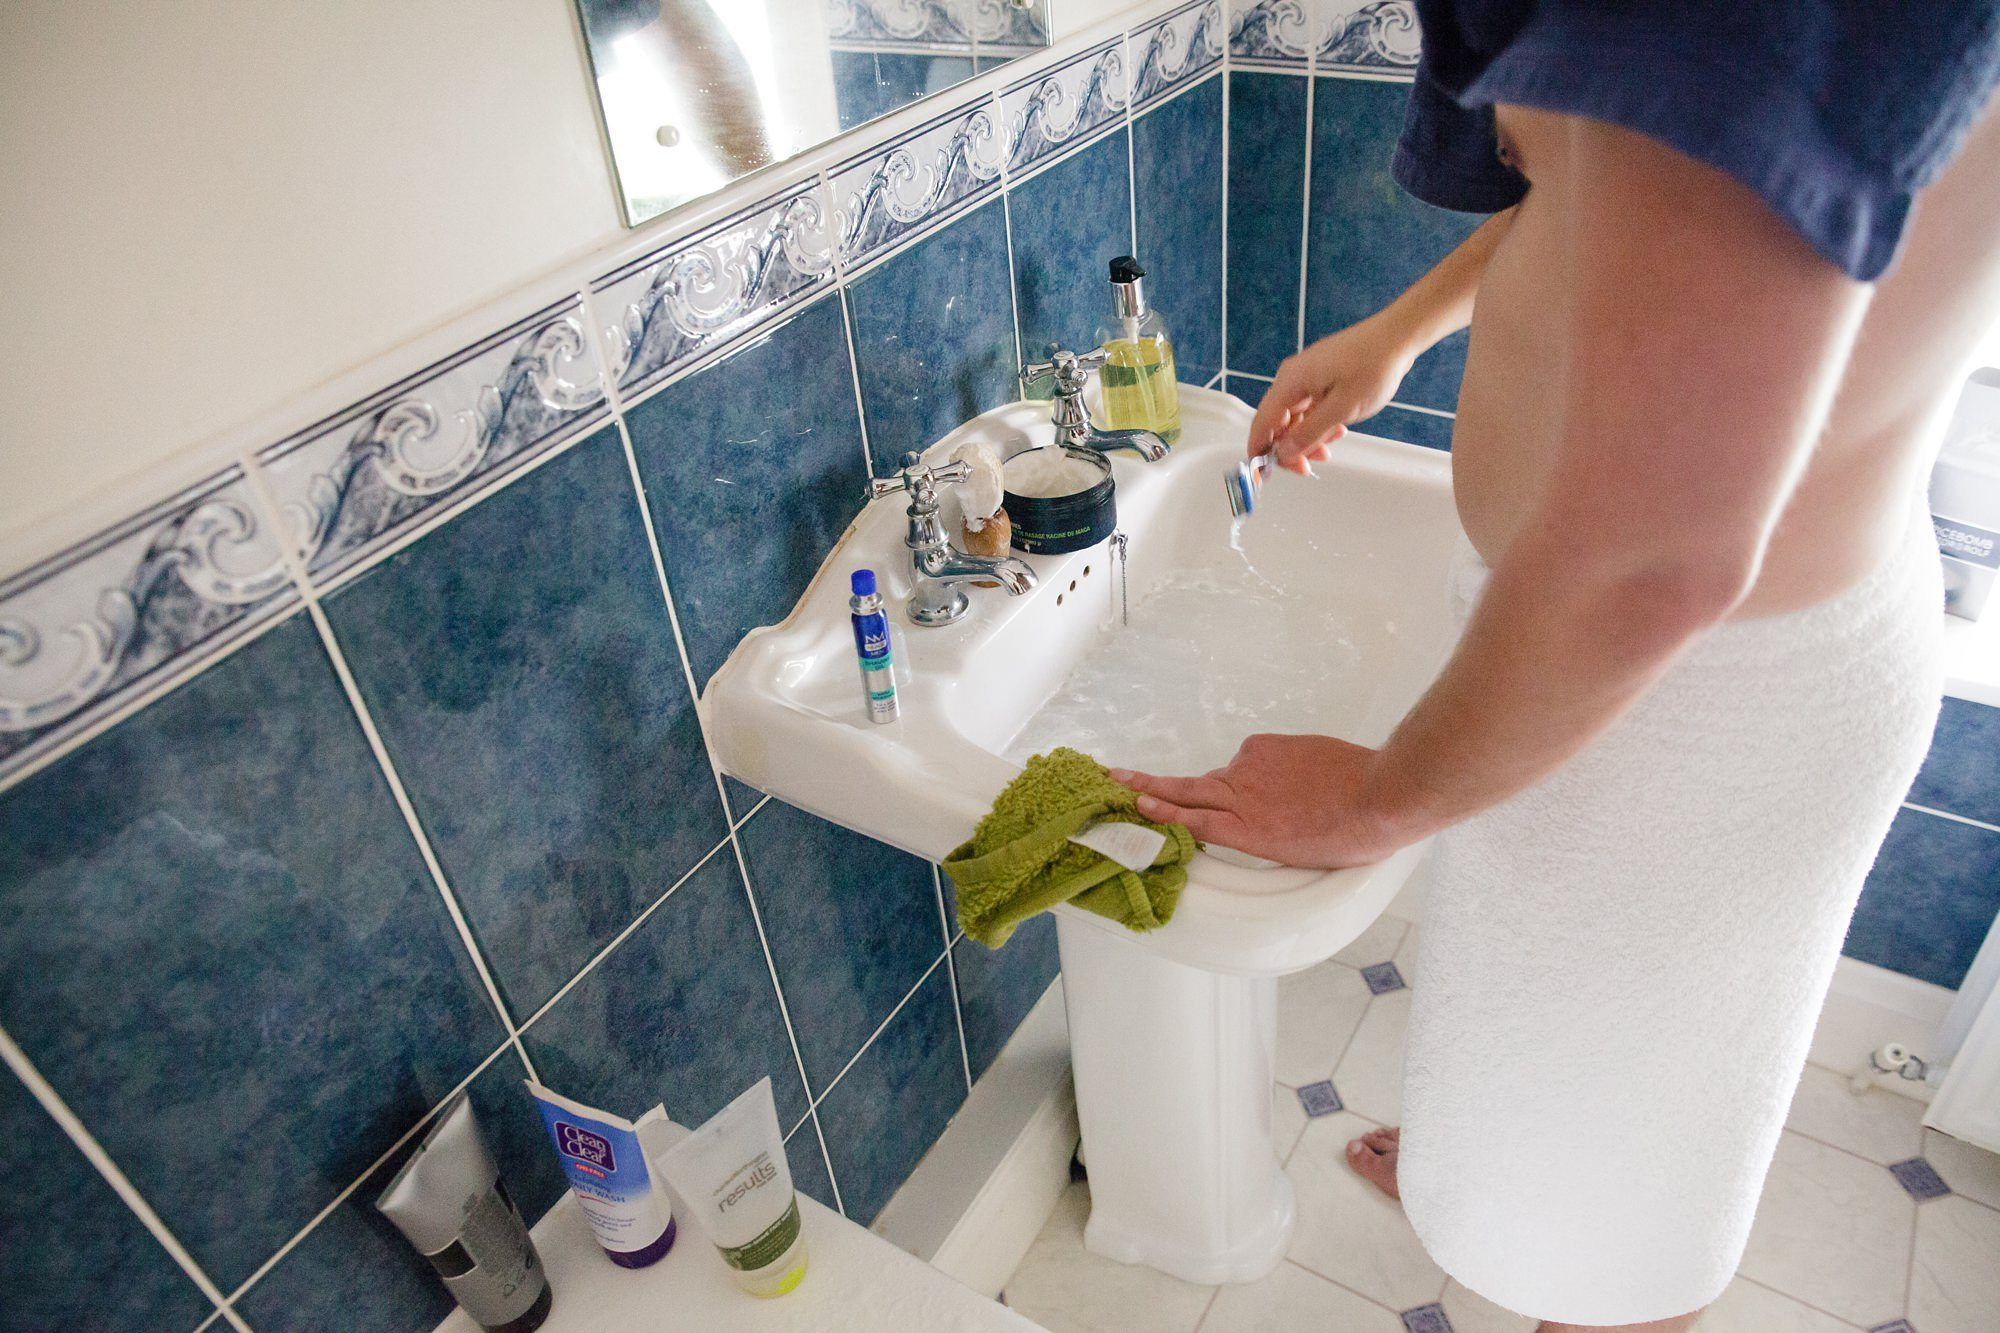 Groom shaving at sink with towl over his shoulder